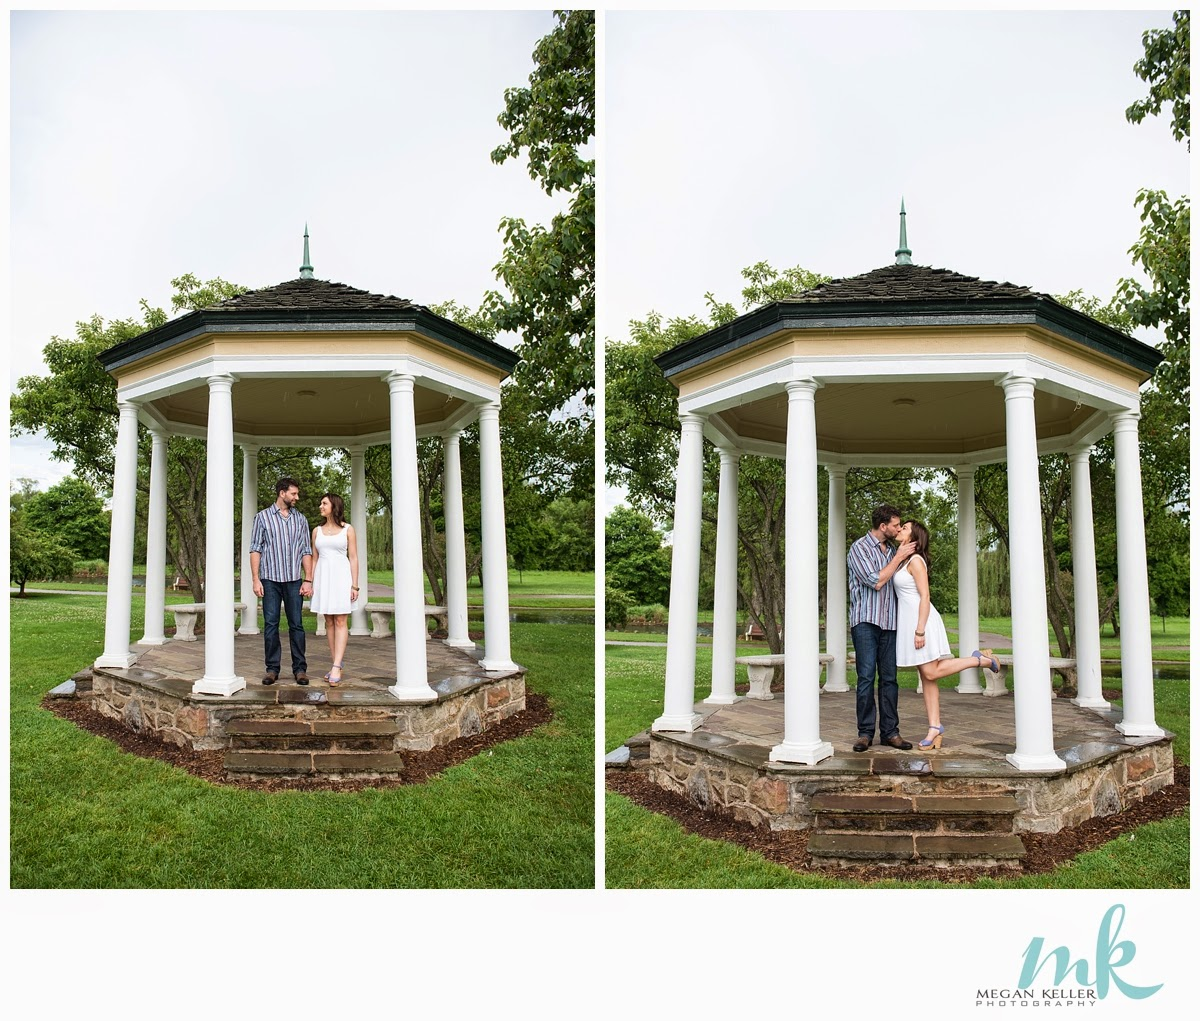 Lauren and Patrick Engagement Session Lauren and Patrick Engagement Session 2014 08 02 0009